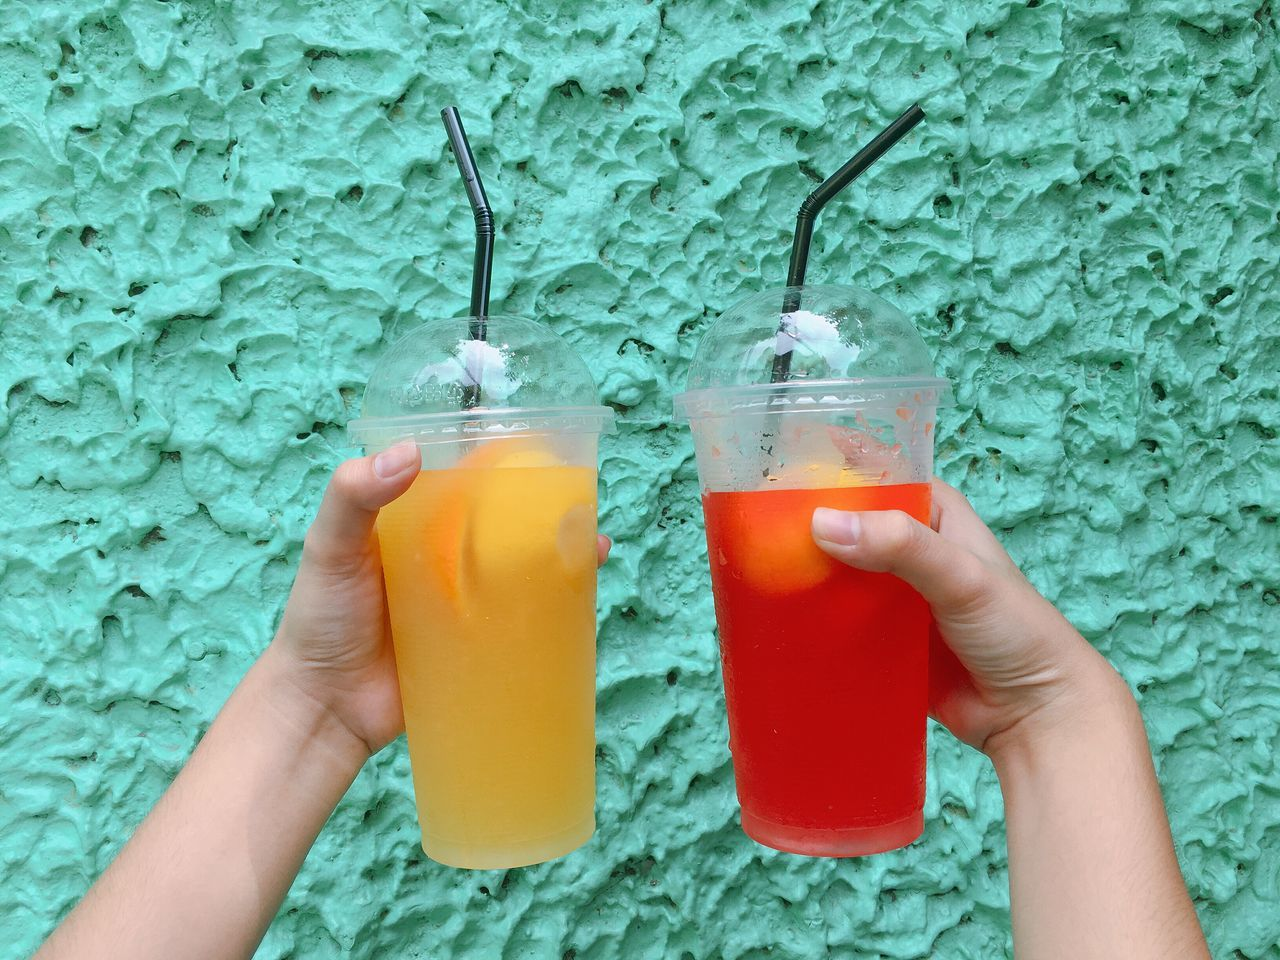 Eyeem Philippines Human Hand Drink Human Body Part Food And Drink Real People Personal Perspective Holding Drinking Glass Drinking Straw Lifestyles Refreshment One Person Unrecognizable Person Freshness Leisure Activity Friendship Healthy Eating Women Indoors  Day Sommergefühle